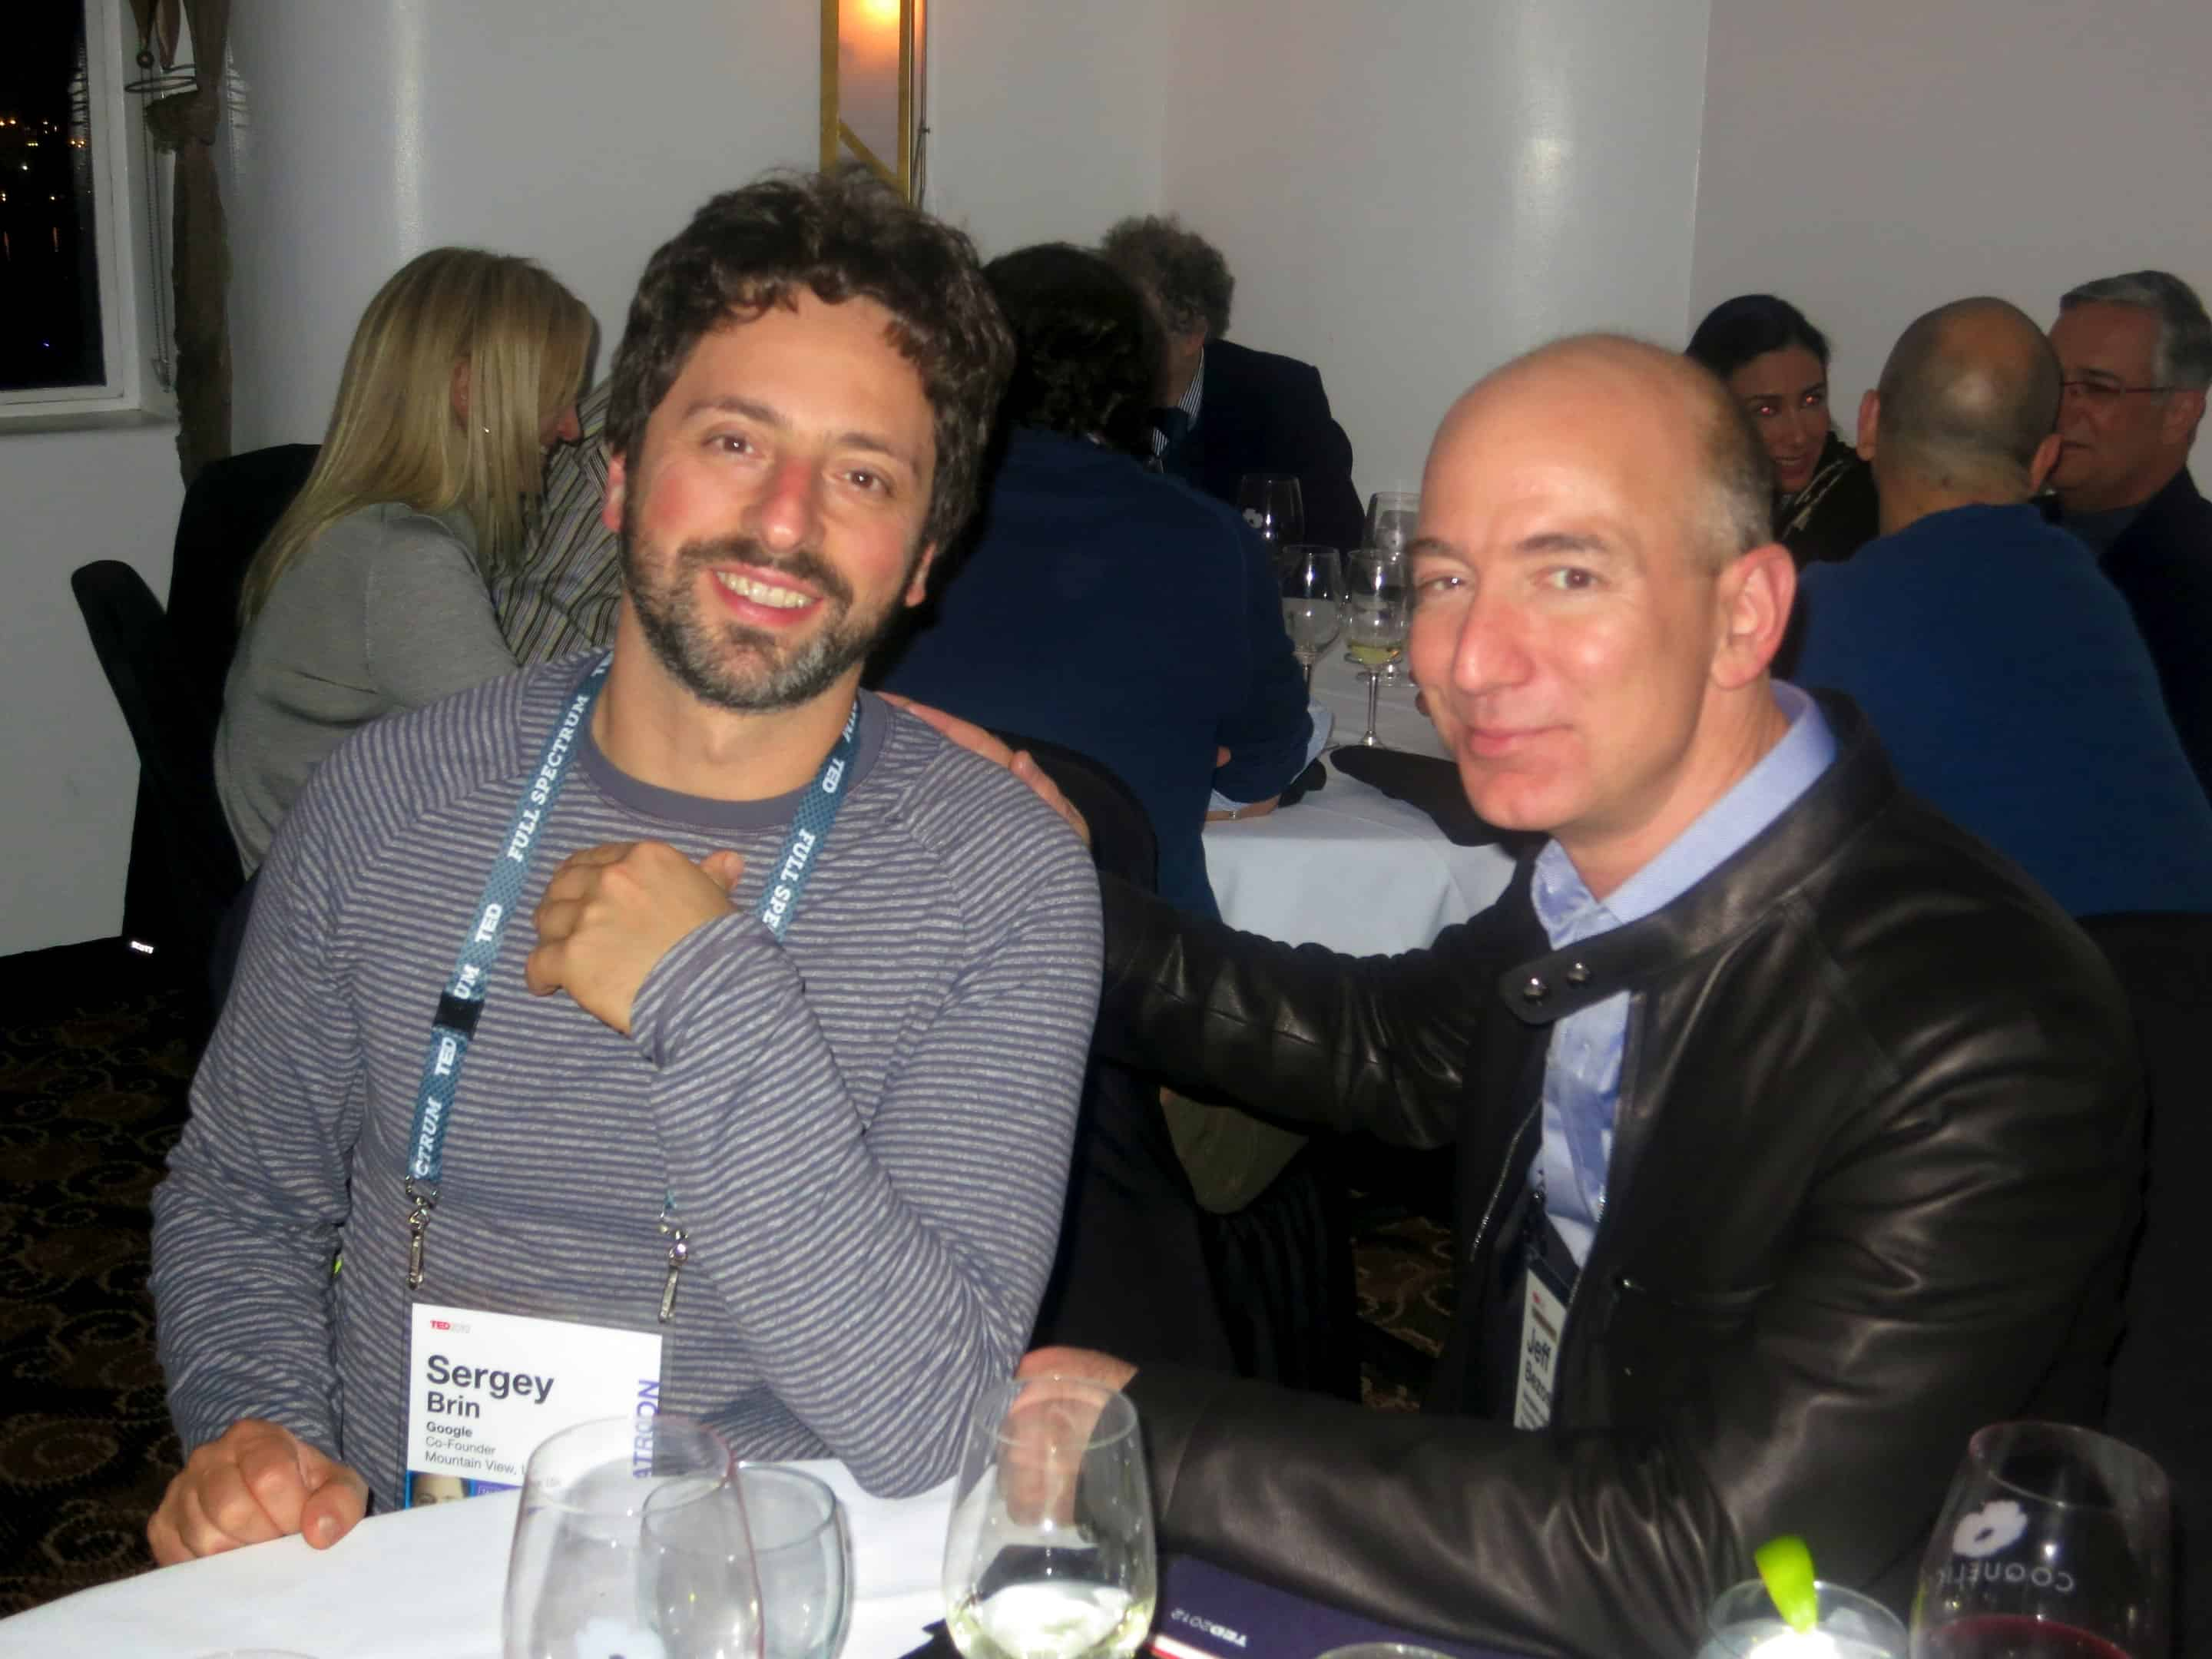 Sergey Brin and Jeff Bezos in Amazon/Google Conference